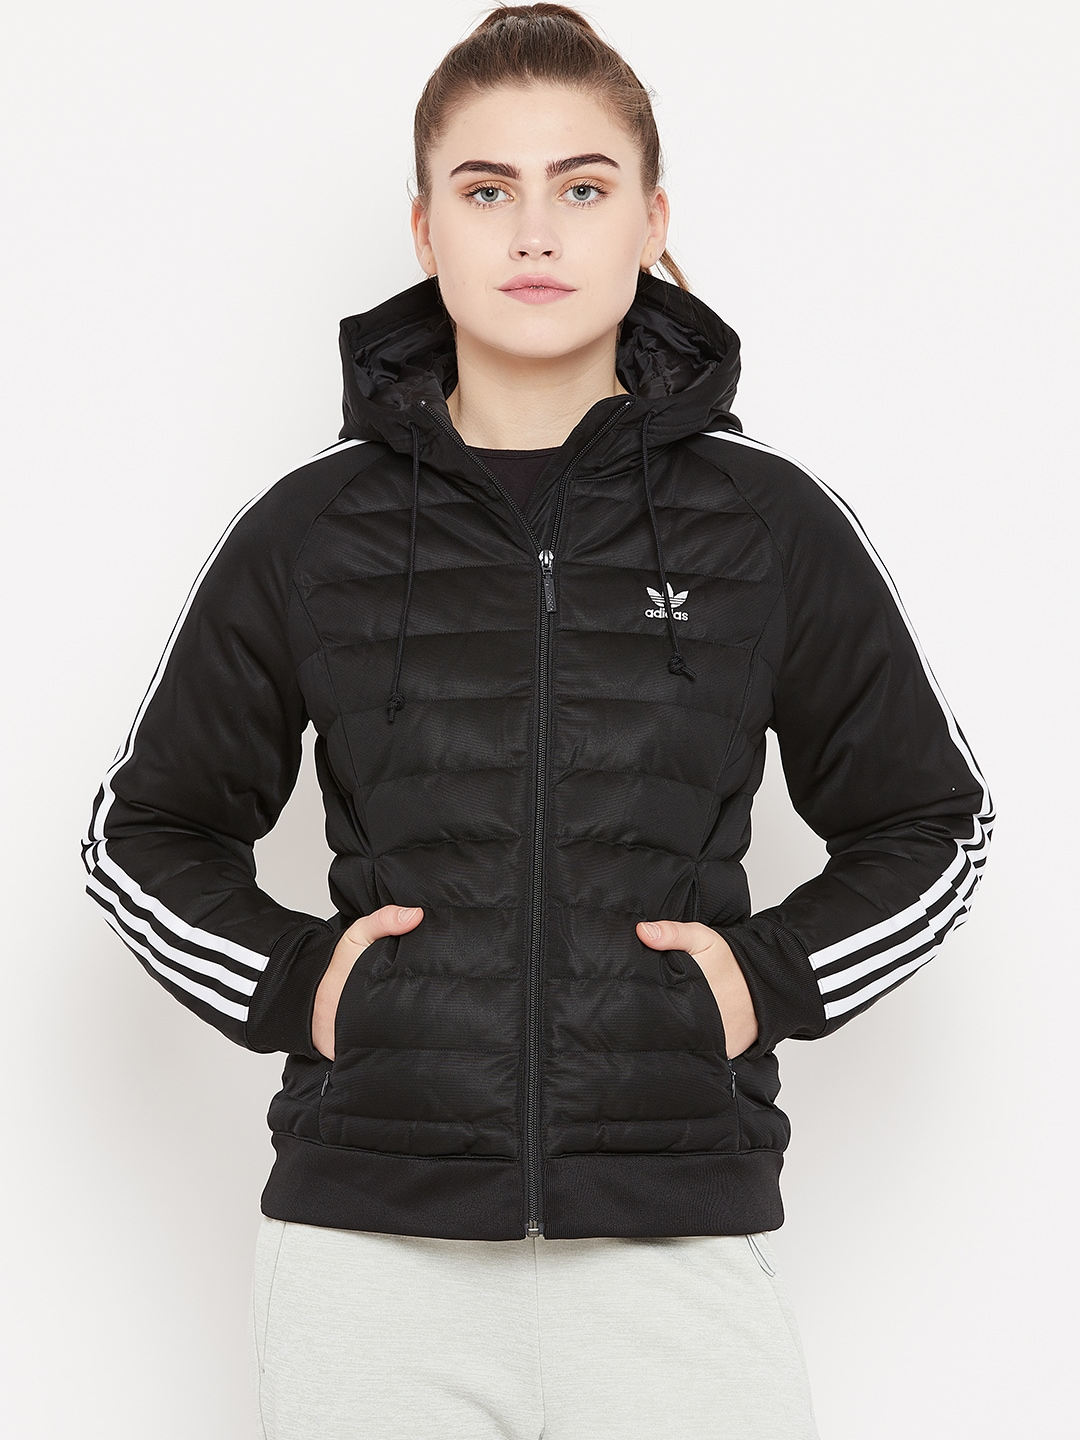 e1bdfc90e494 Adidas Women Jackets - Buy Adidas Women Jackets online in India